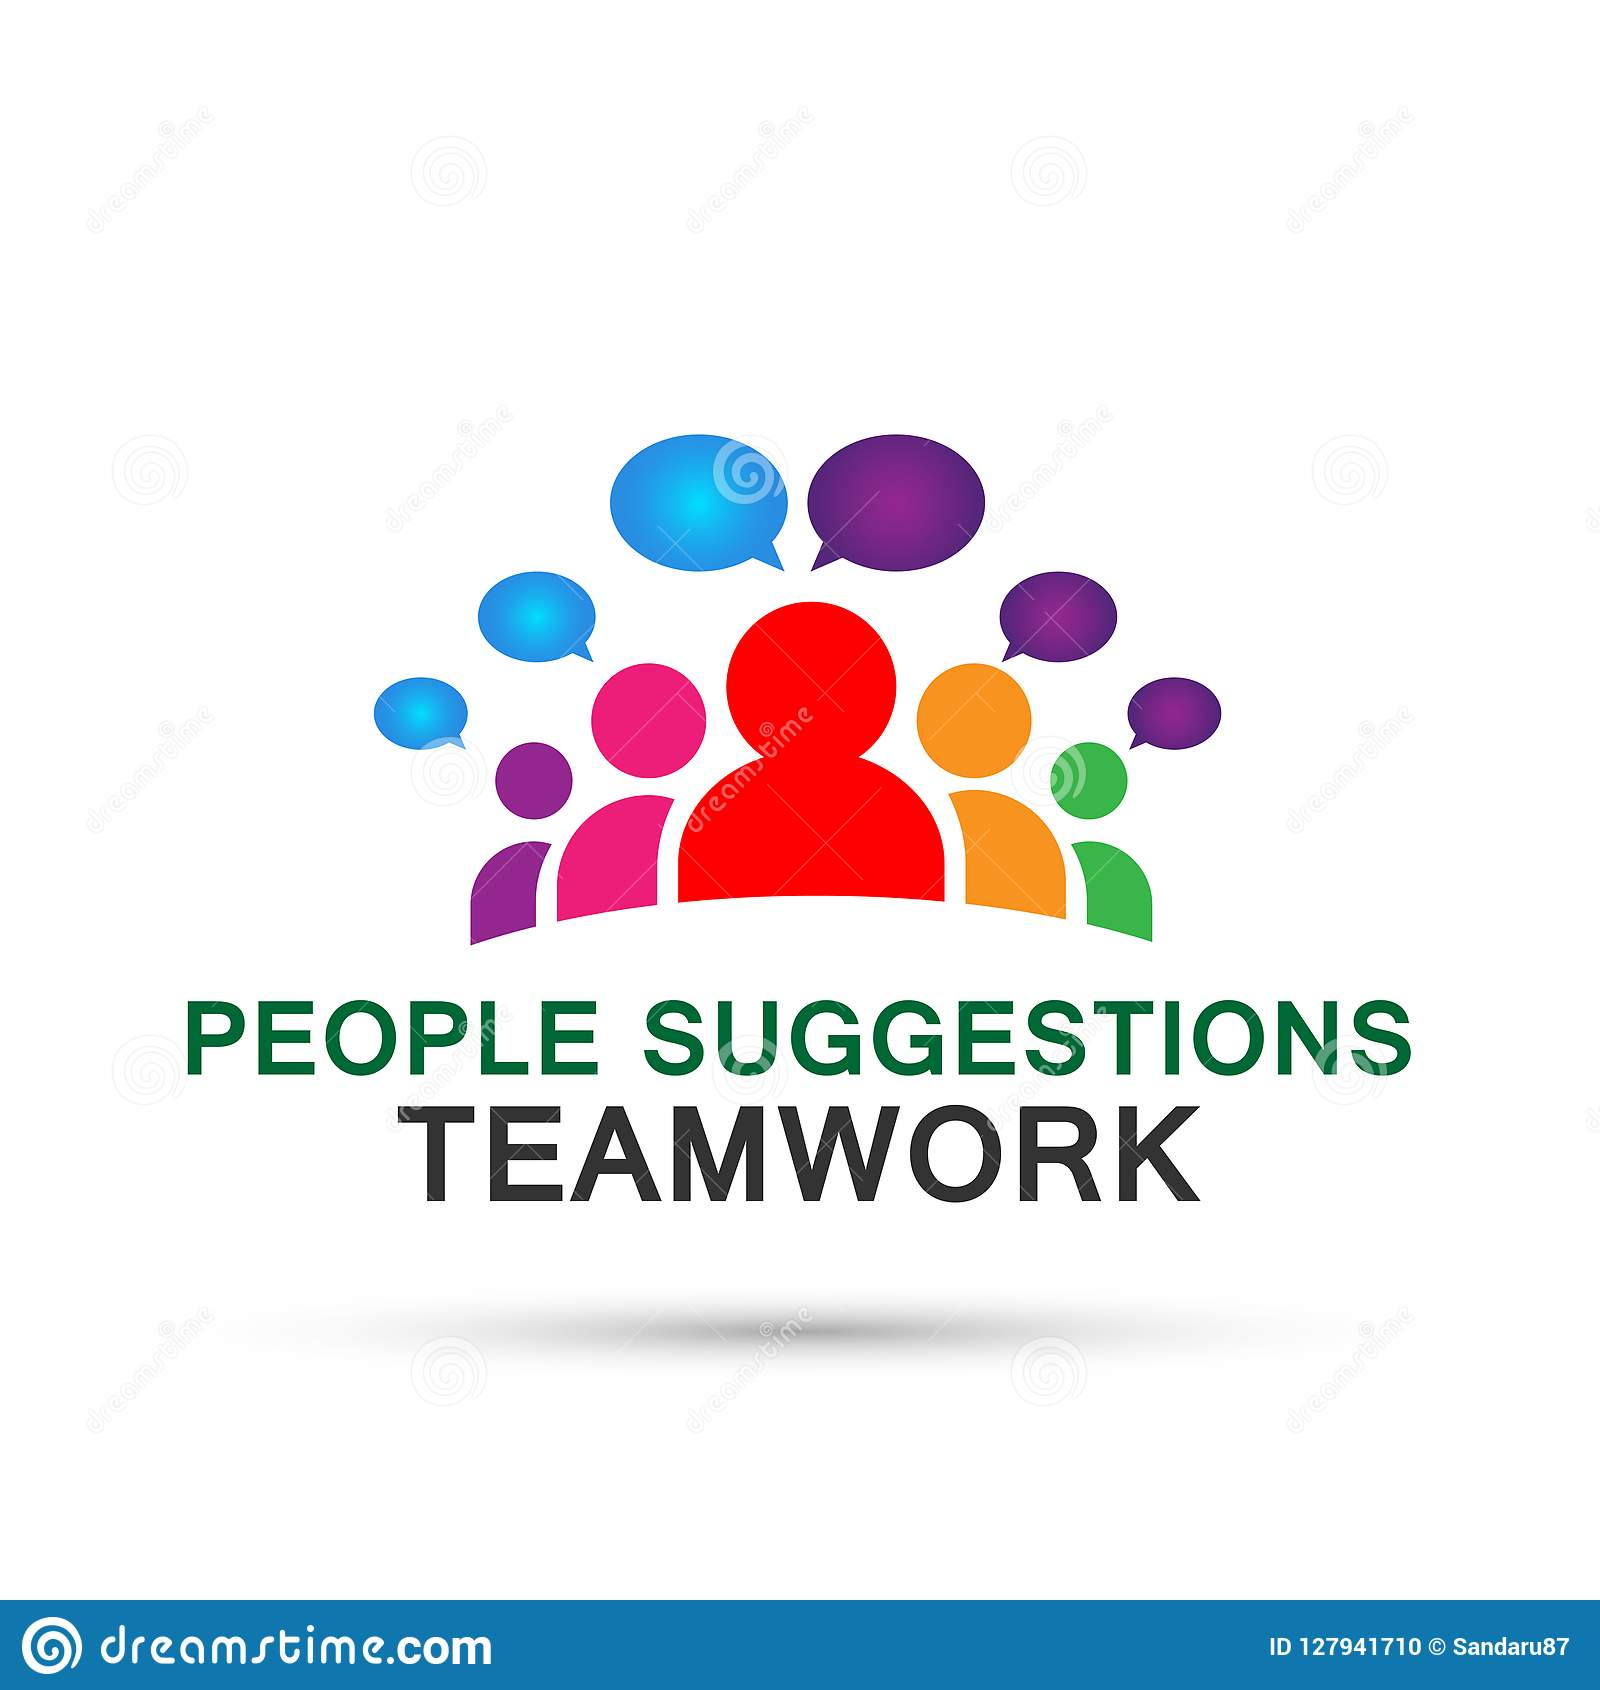 People Suggestions Team Work Logo Partnership Education Celebration Group Work People Icon Vector Designs On White